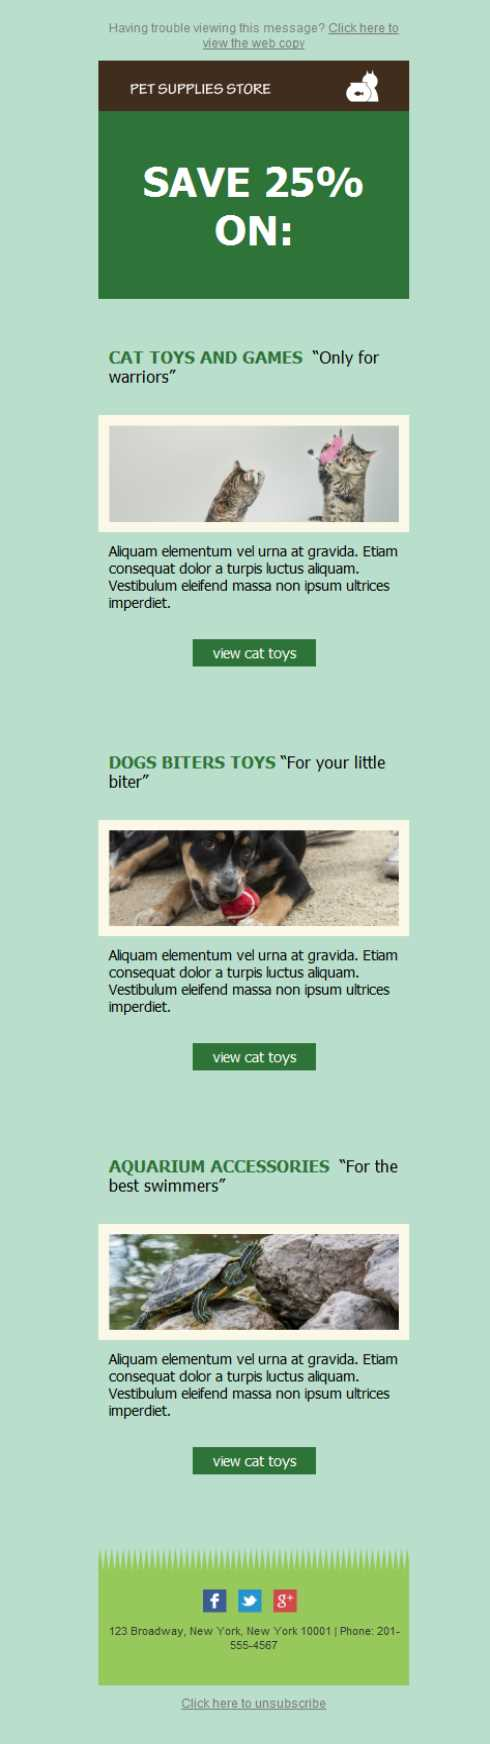 Templates Emailing Pet Supplies Sarbacane